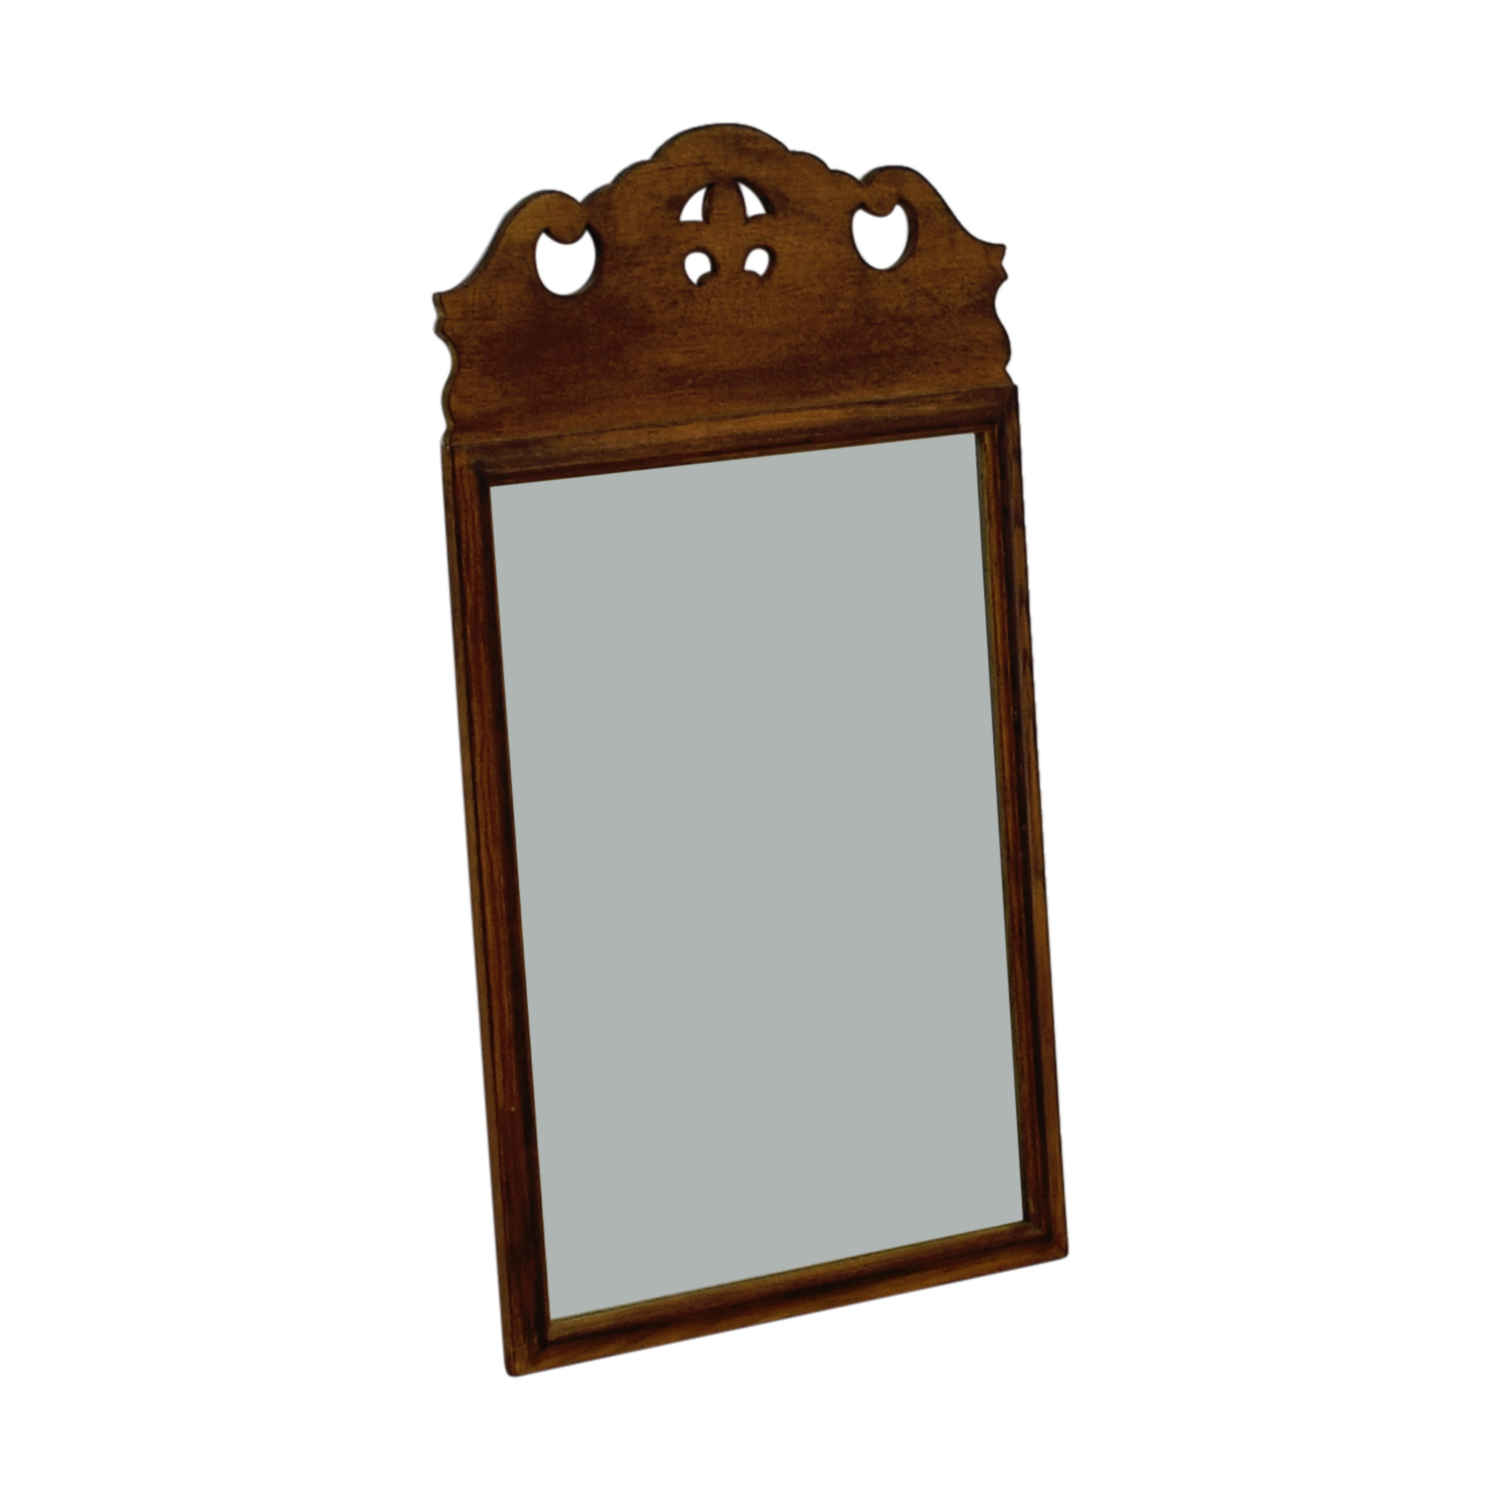 buy Kling Factories Oak Wood Framed Mirror Kling Factories